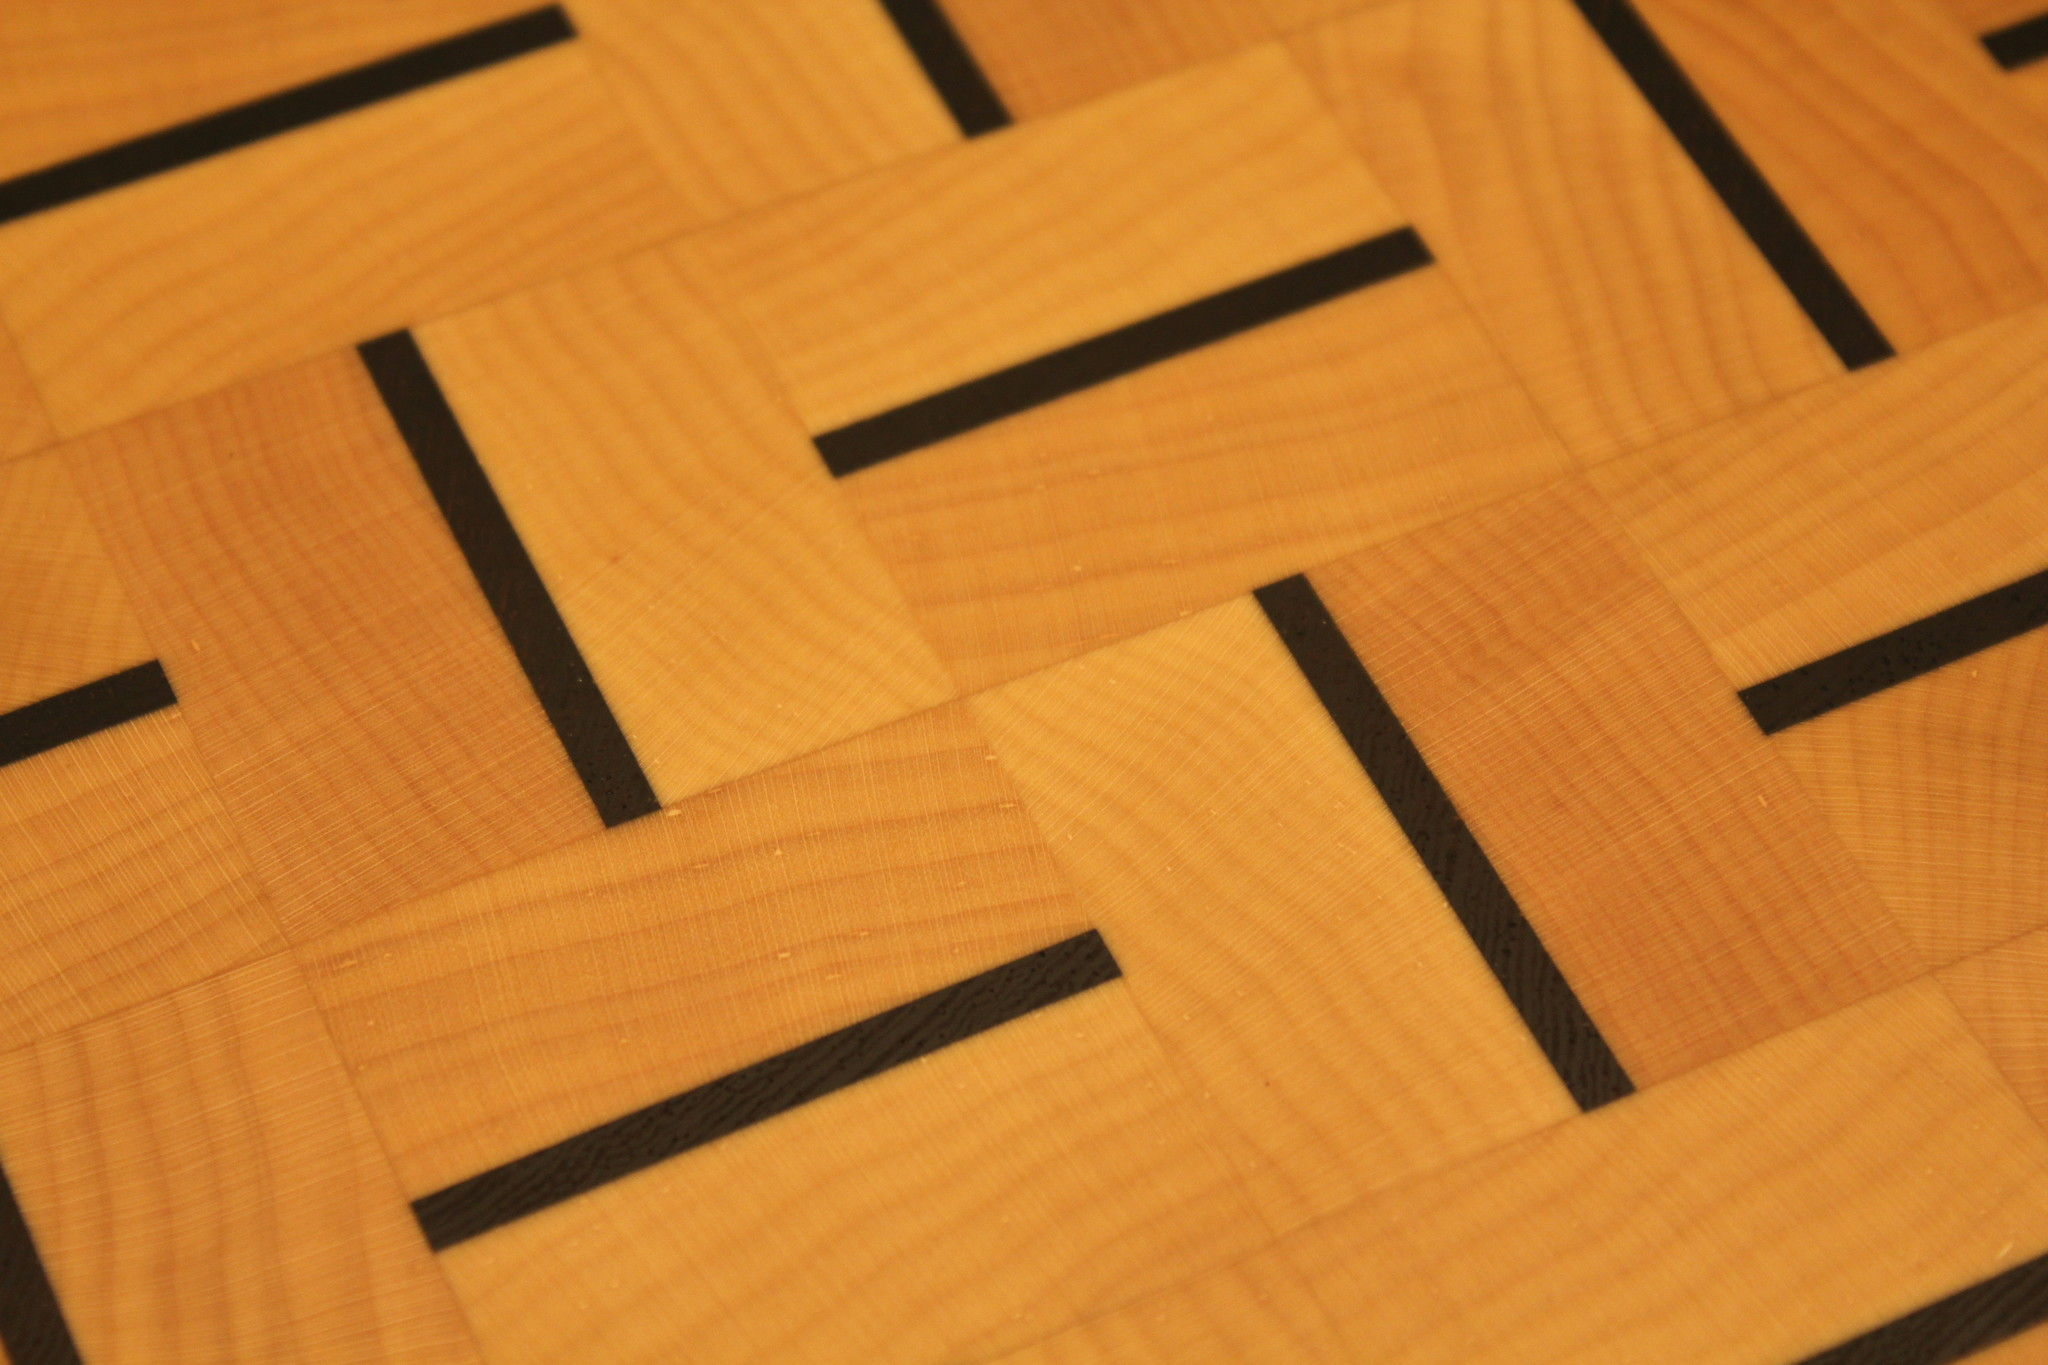 End grain cutting board of hard maple alternating stripes of dark African wenge